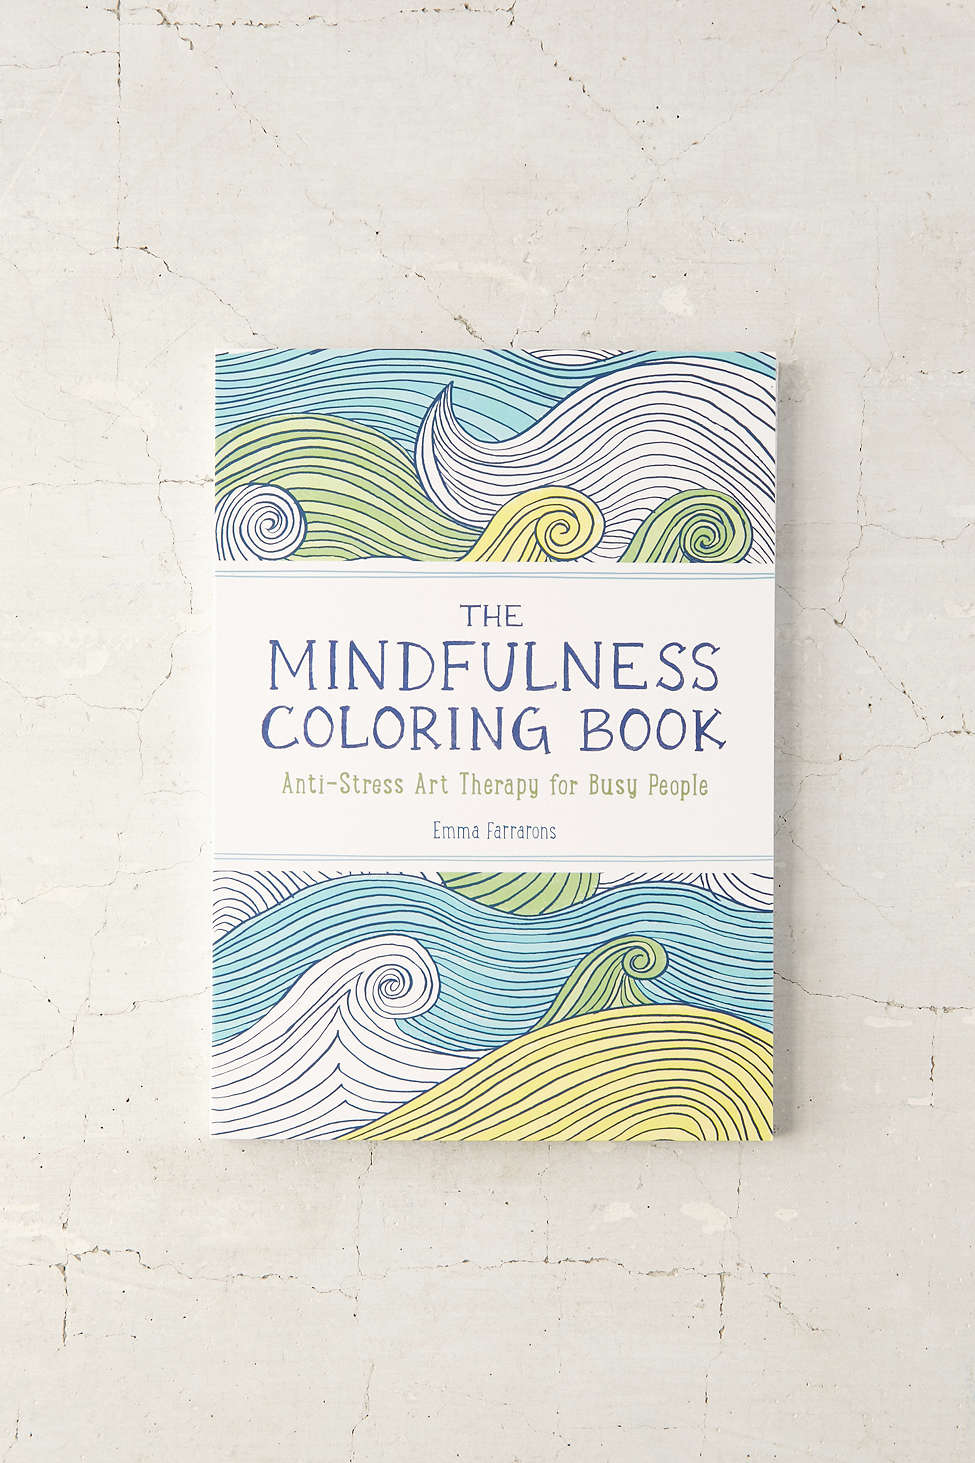 Mindfullness Coloring Book - Urban Outfitters.jpg